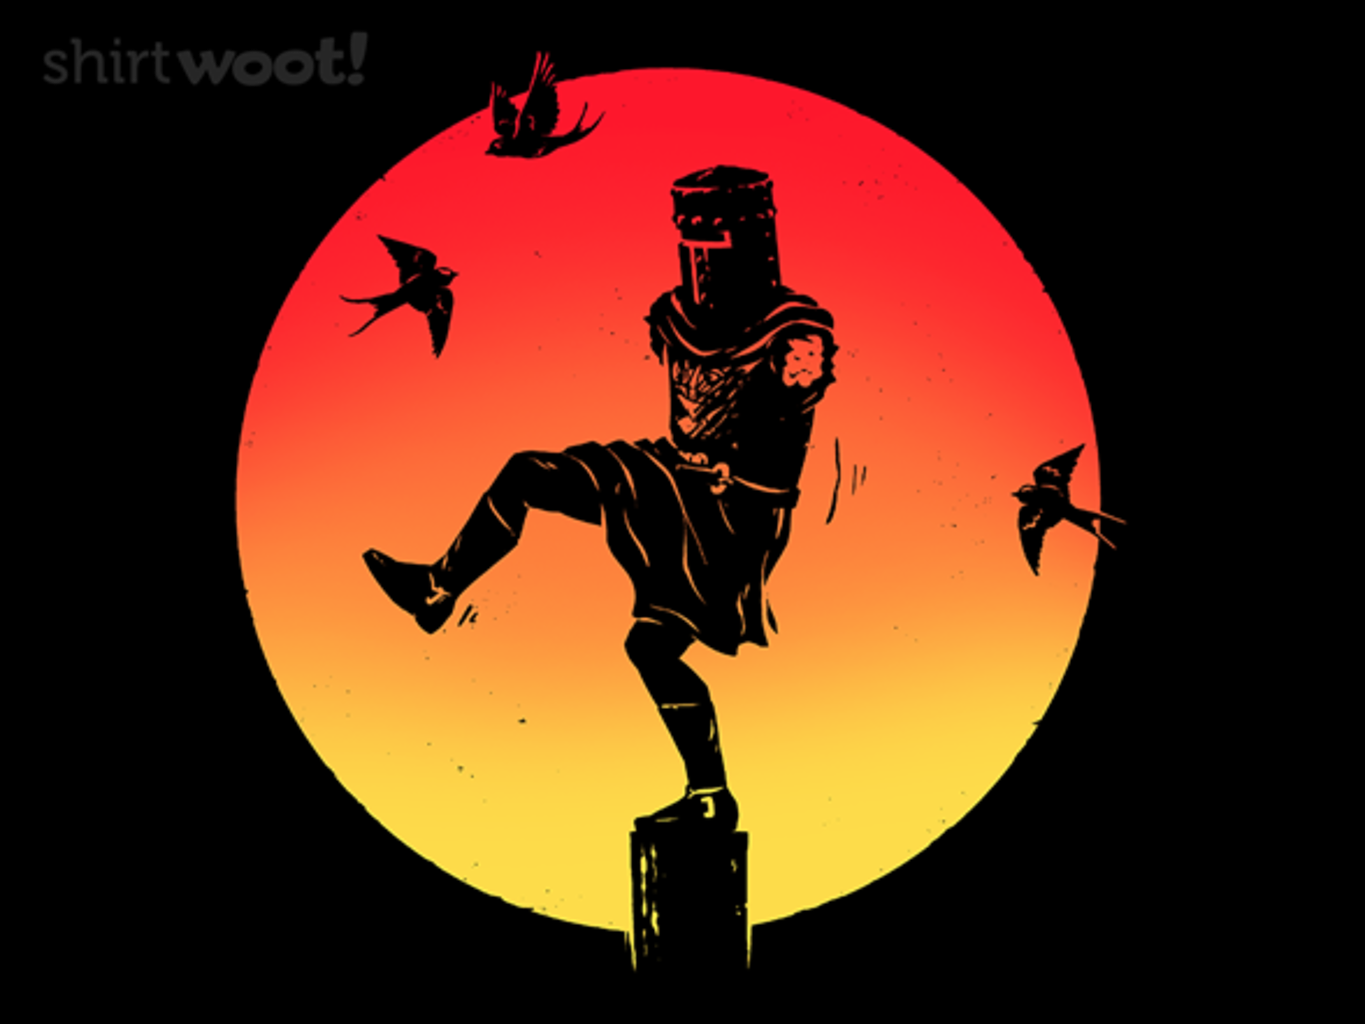 Woot!: The Black Knight